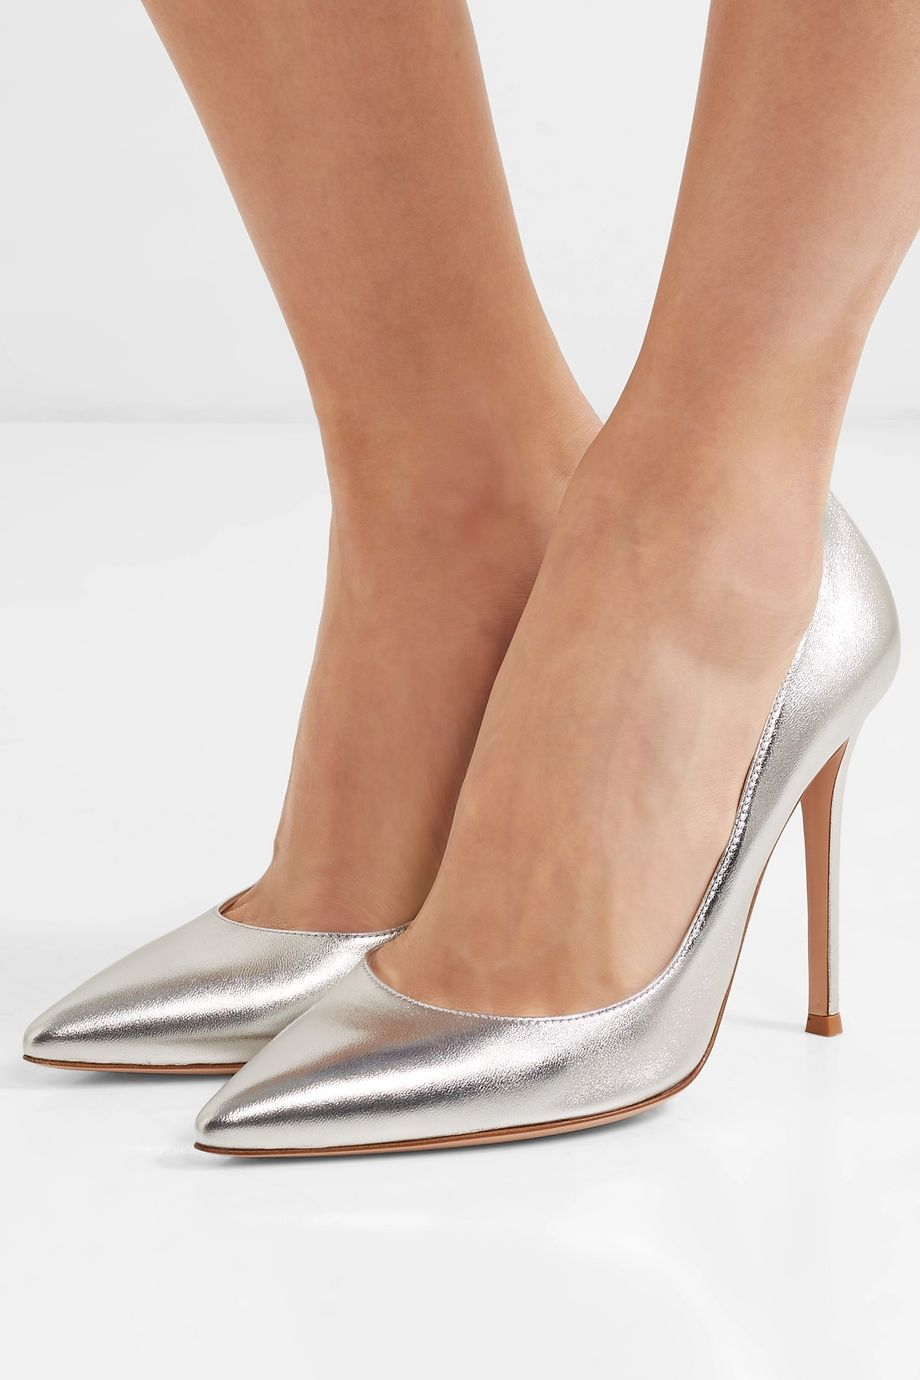 Gianvito Rossi 105 metallic leather pumps